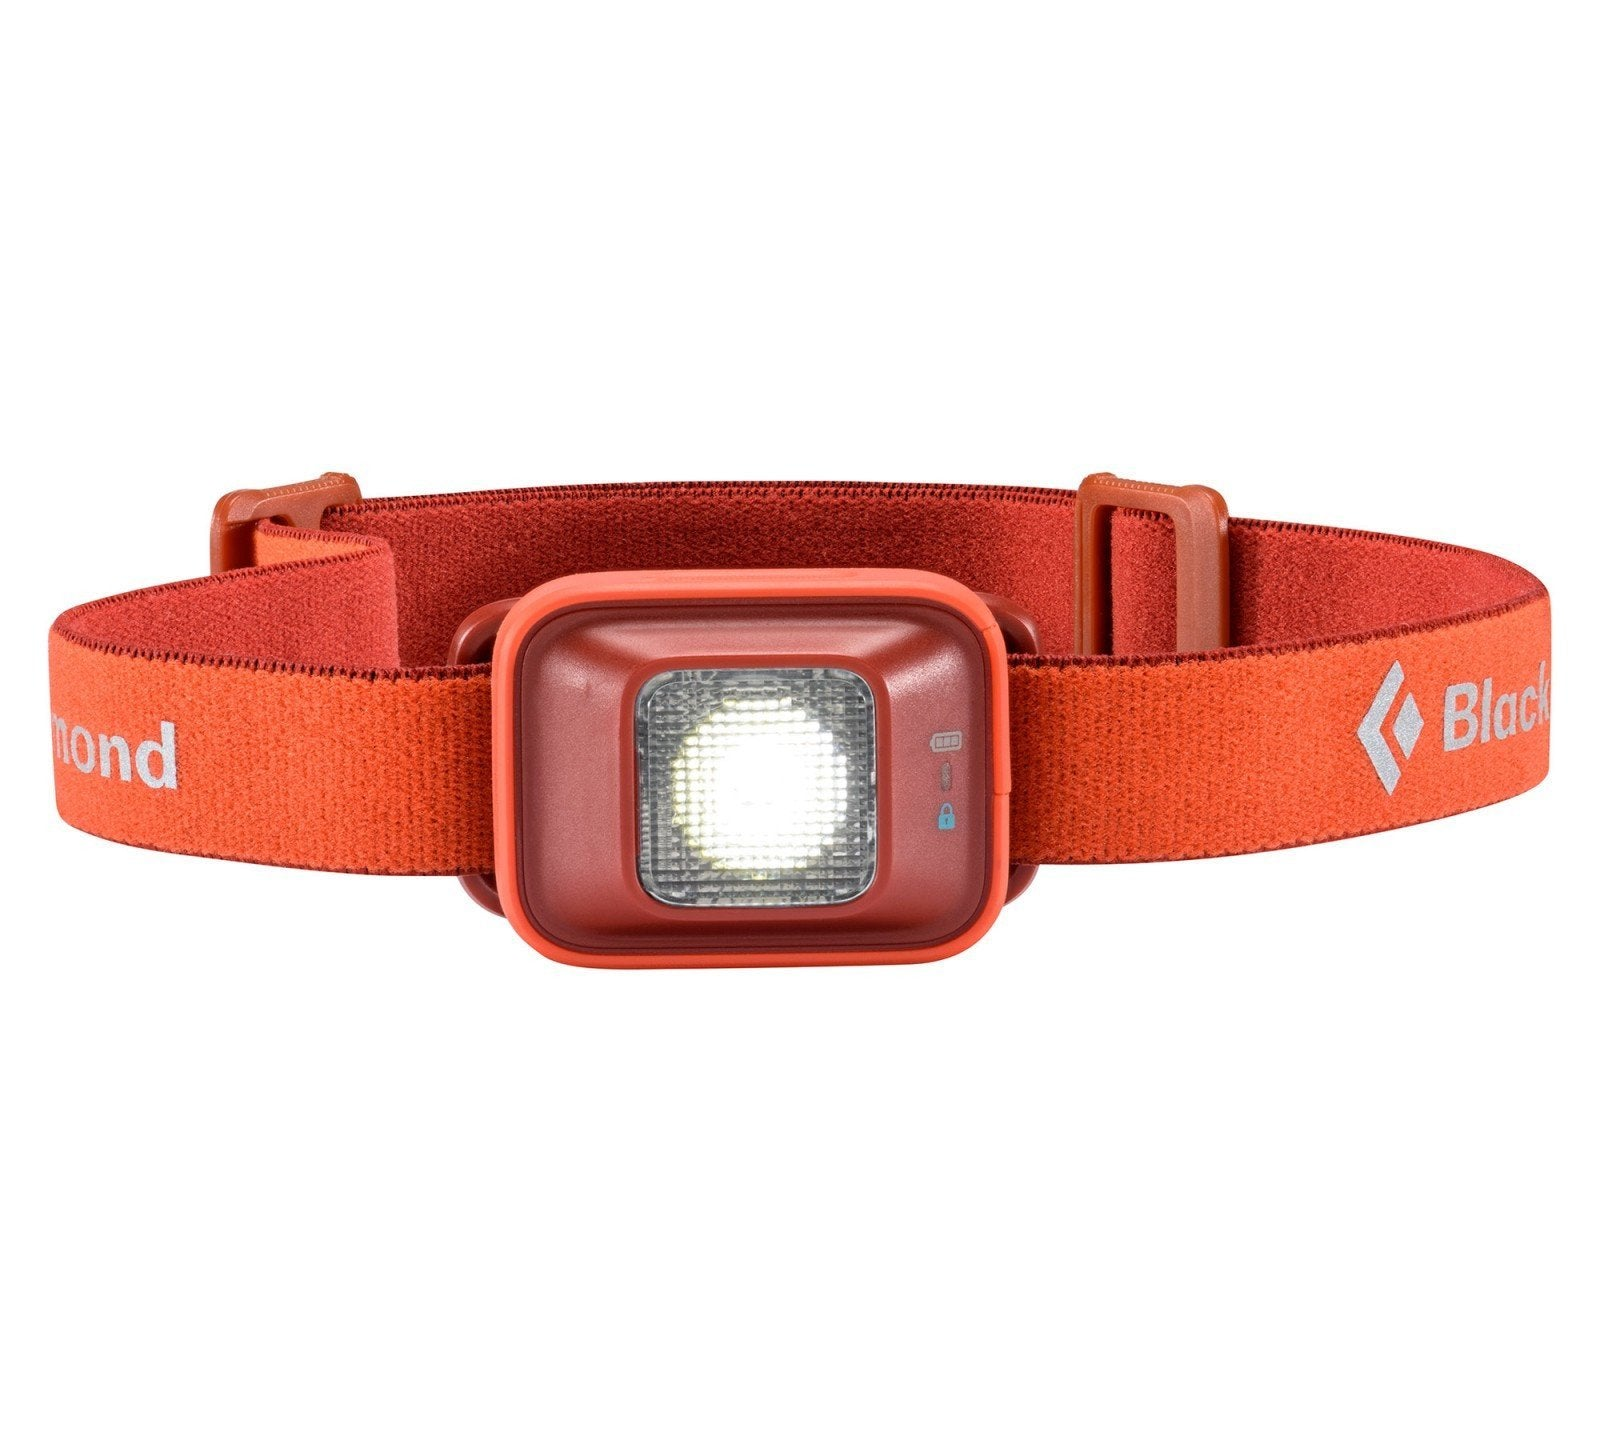 Black Diamond Iota head torch, in red colour